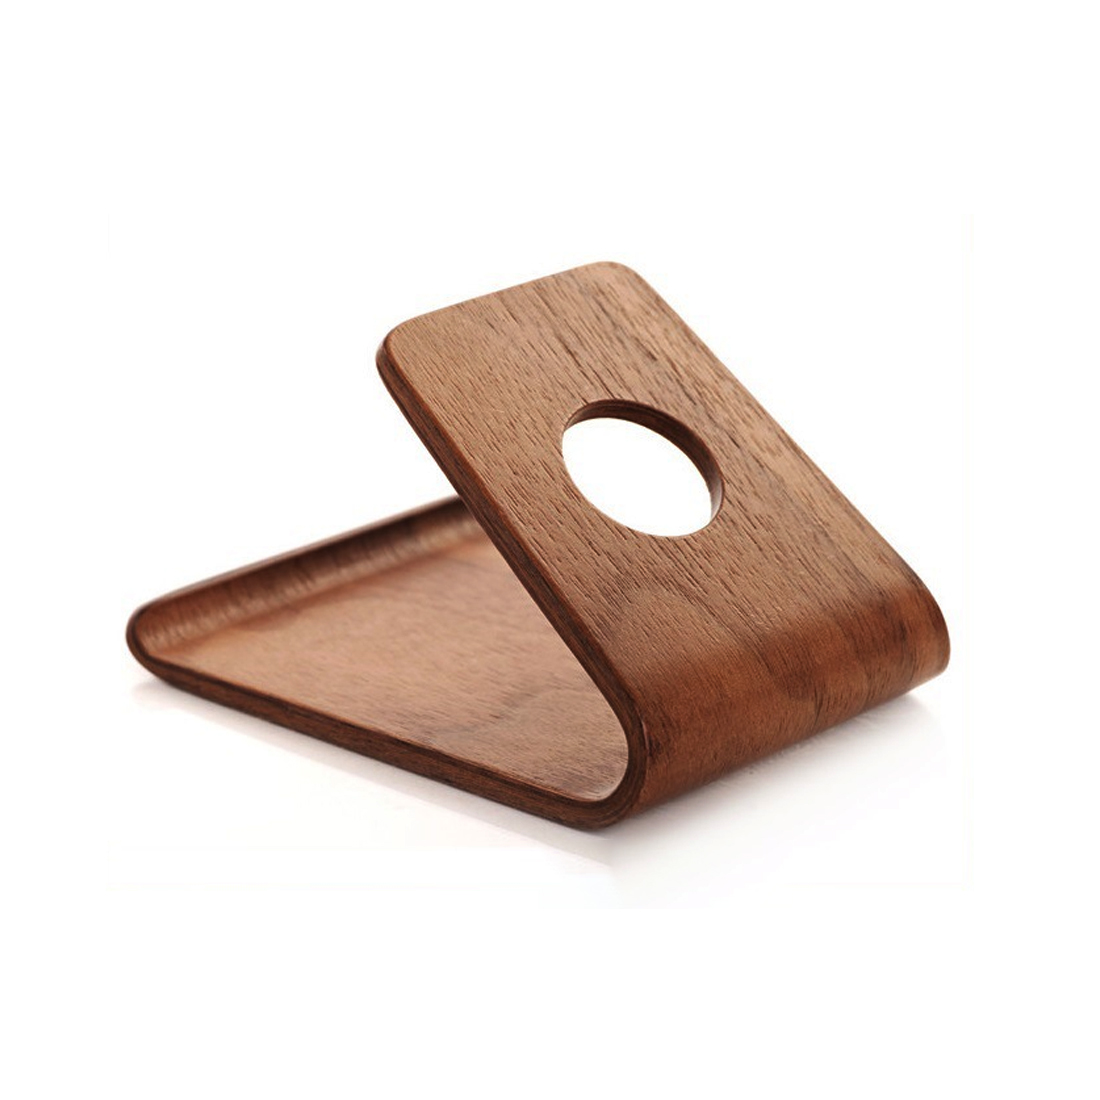 Etmakit Birch/Walnut Lightweight Slim Design Wooden Mobile Phone Stand Holder For IPhone X 8 7 Plus Samsung Galaxy S8 Xiaomi